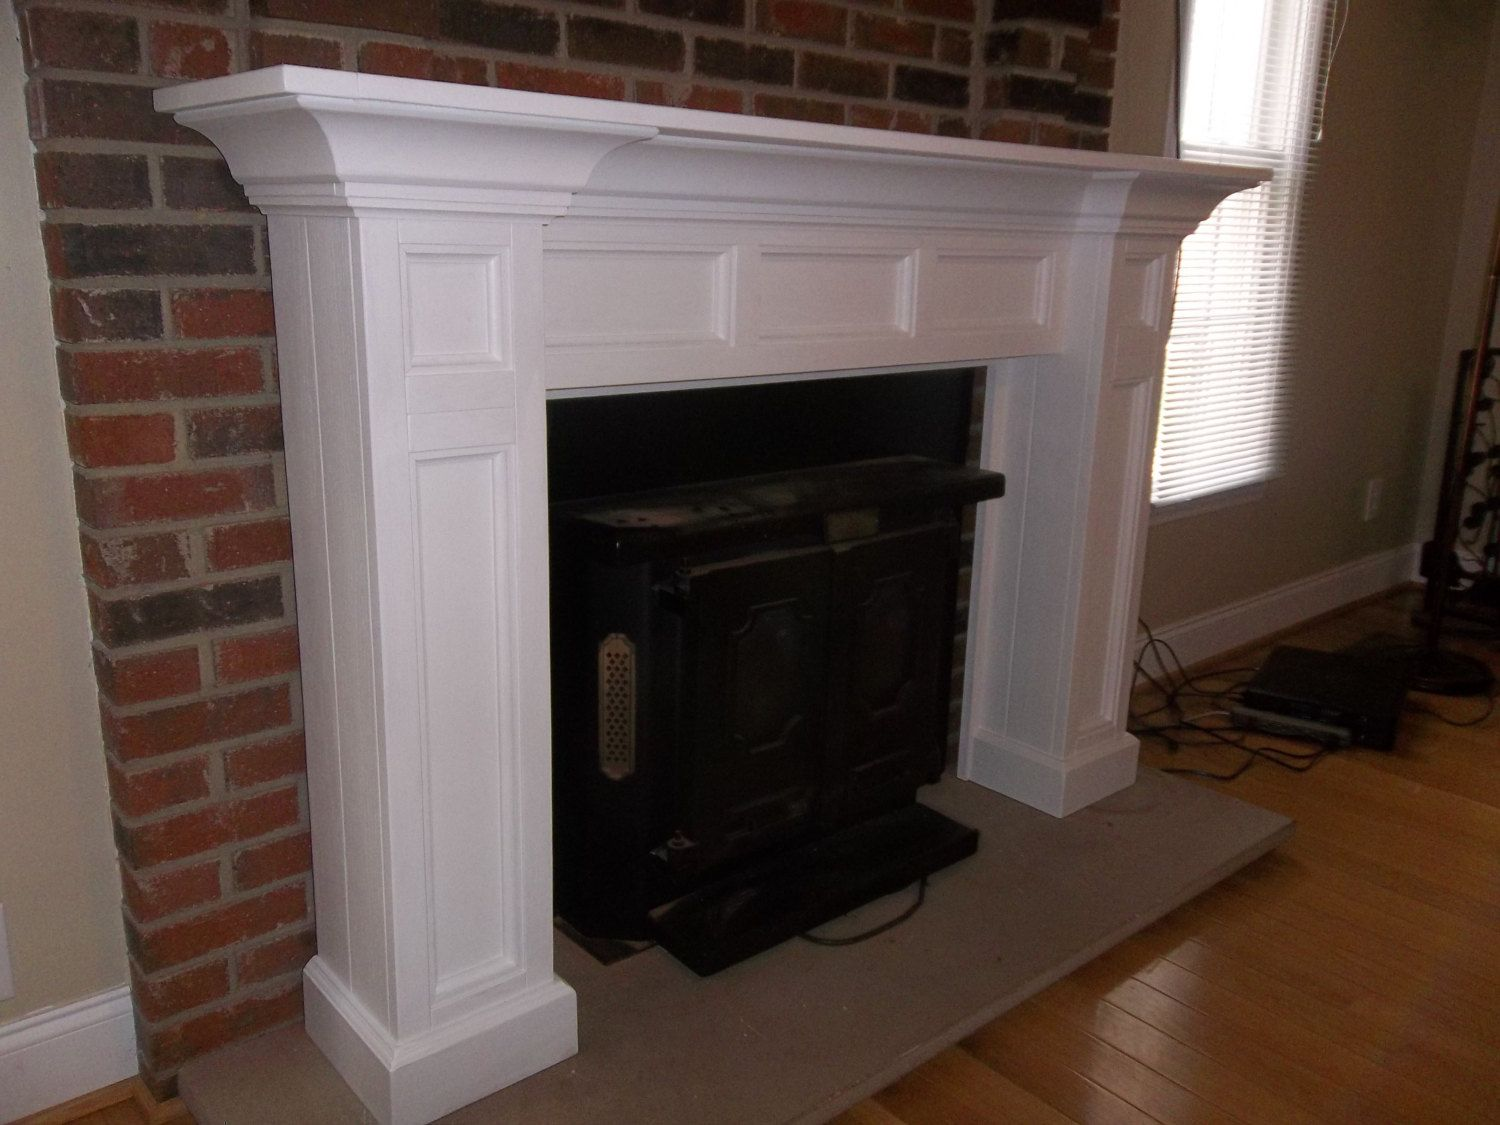 Fireplace Mantels And Surrounds: Painted White Custom Fireplace Mantle Surround